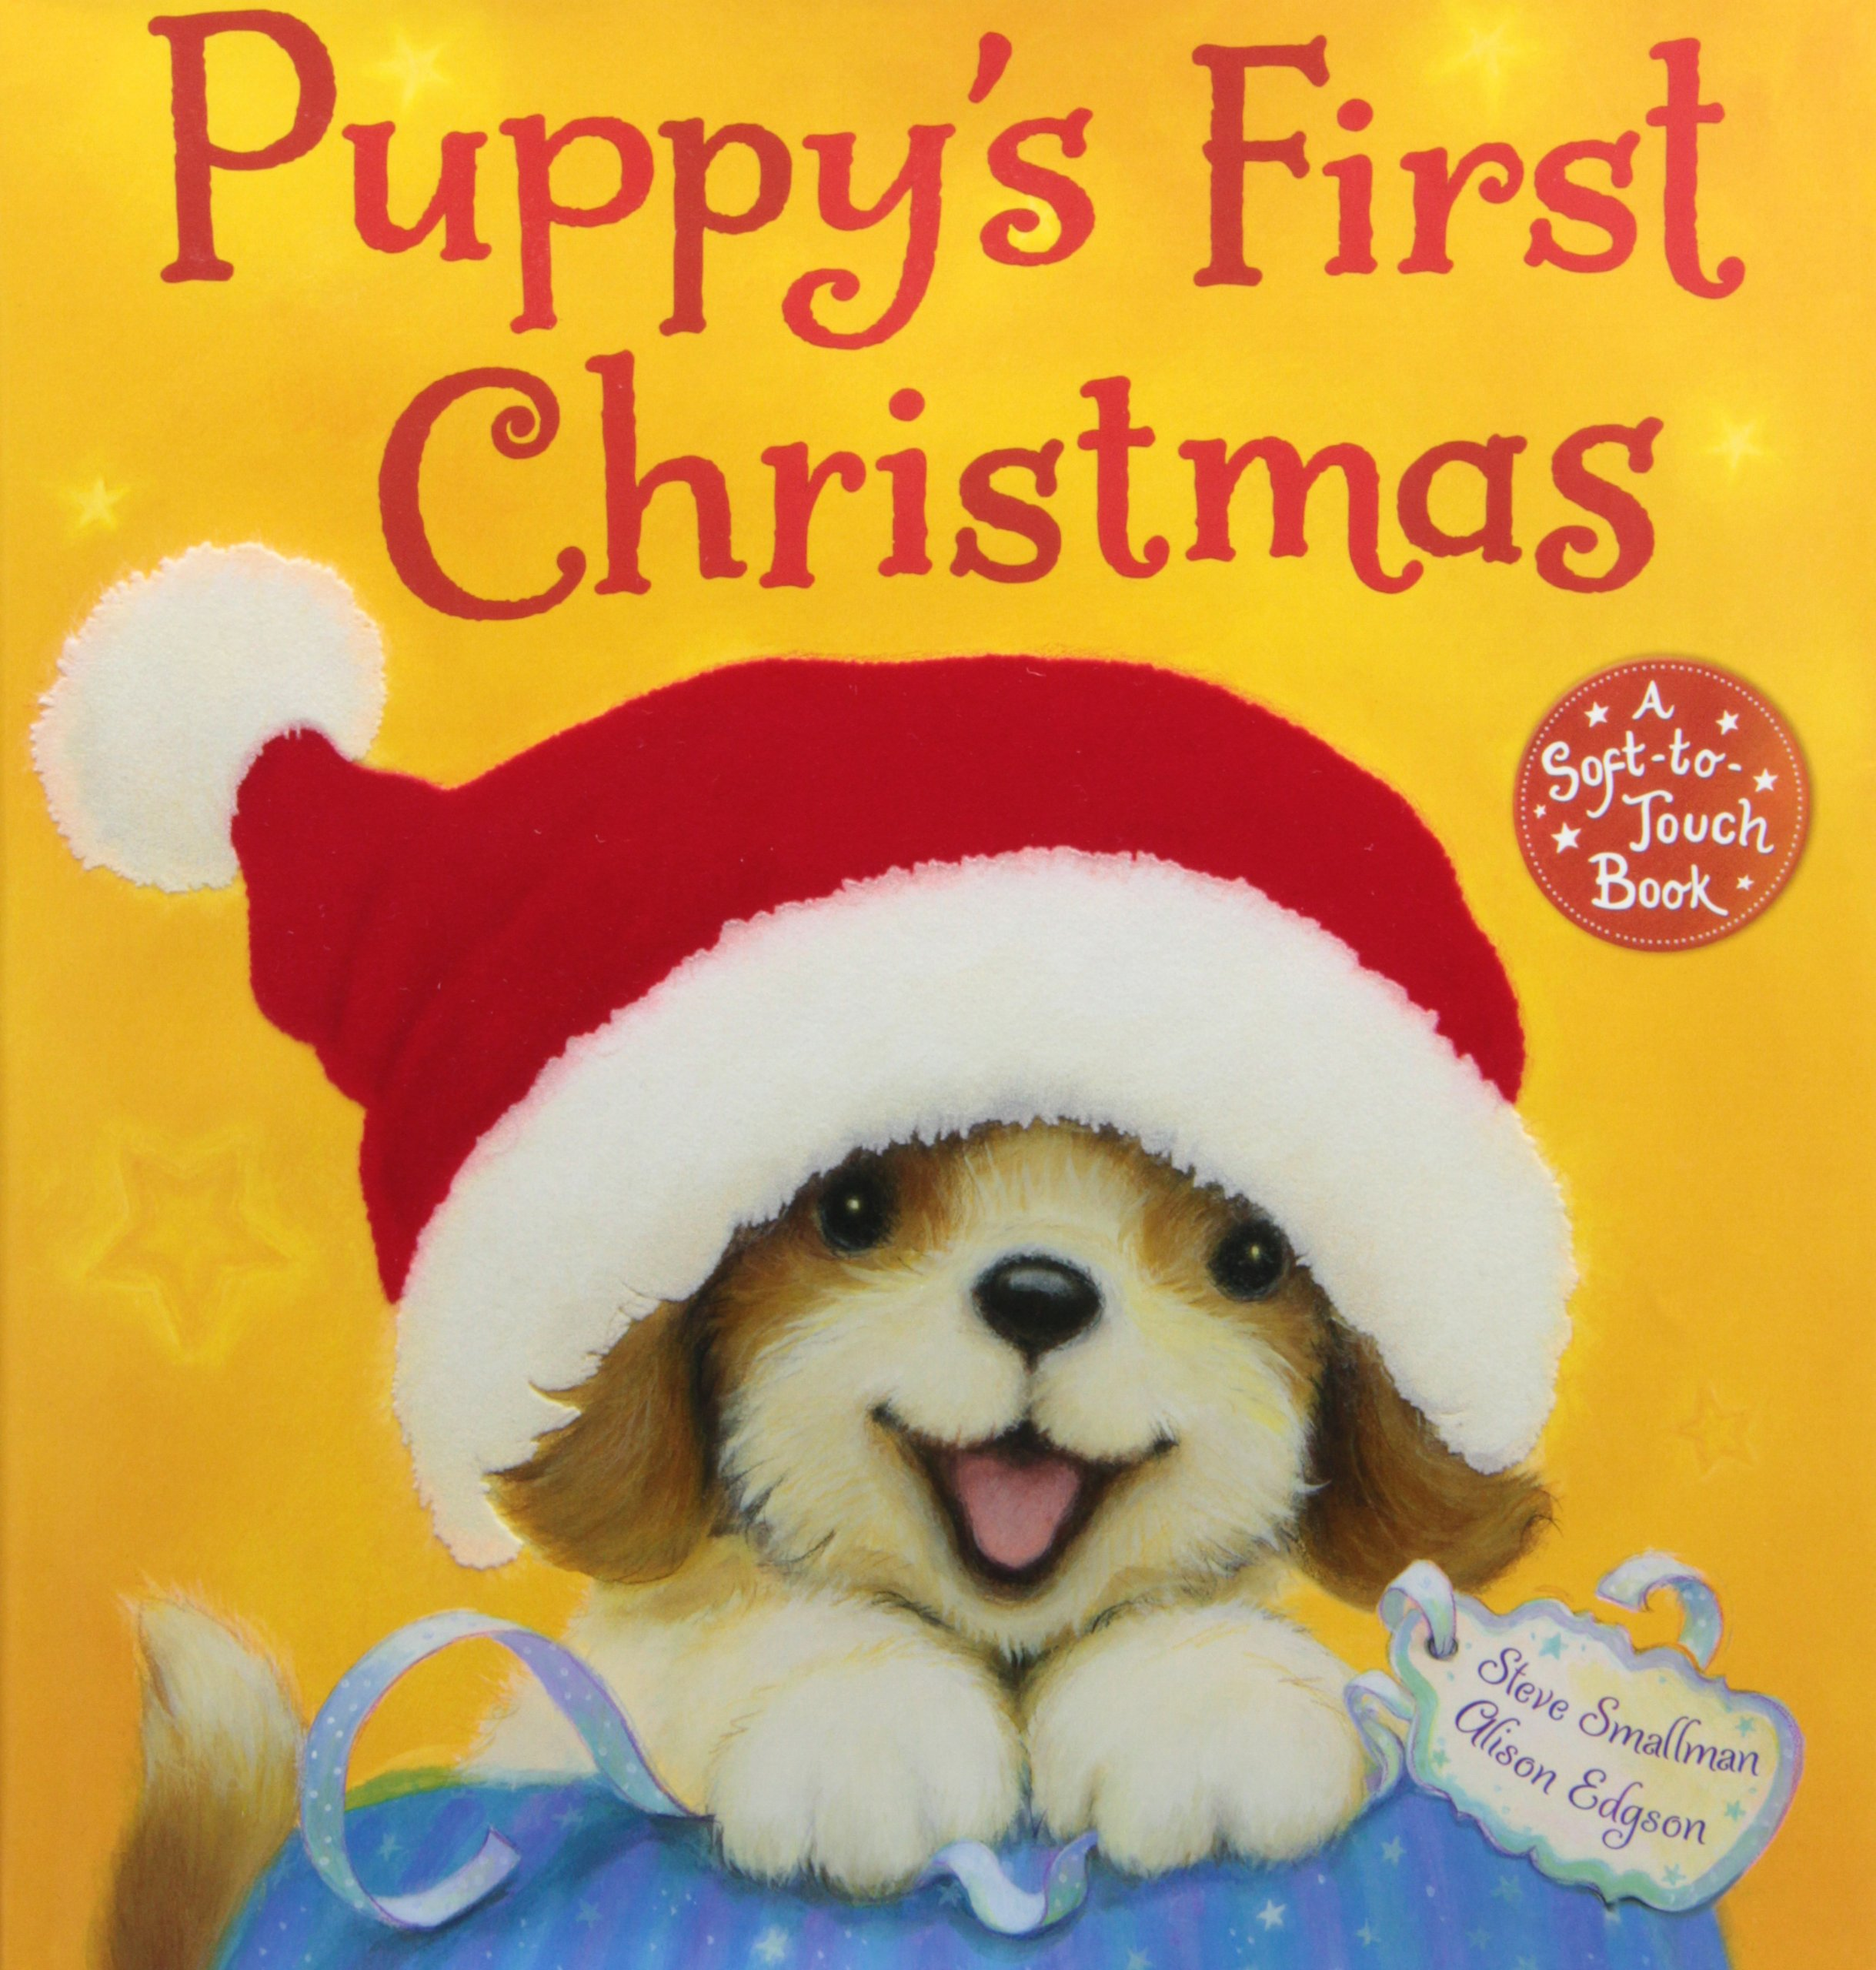 Puppy's First Christmas: 9780545481687: Amazon.com: Books